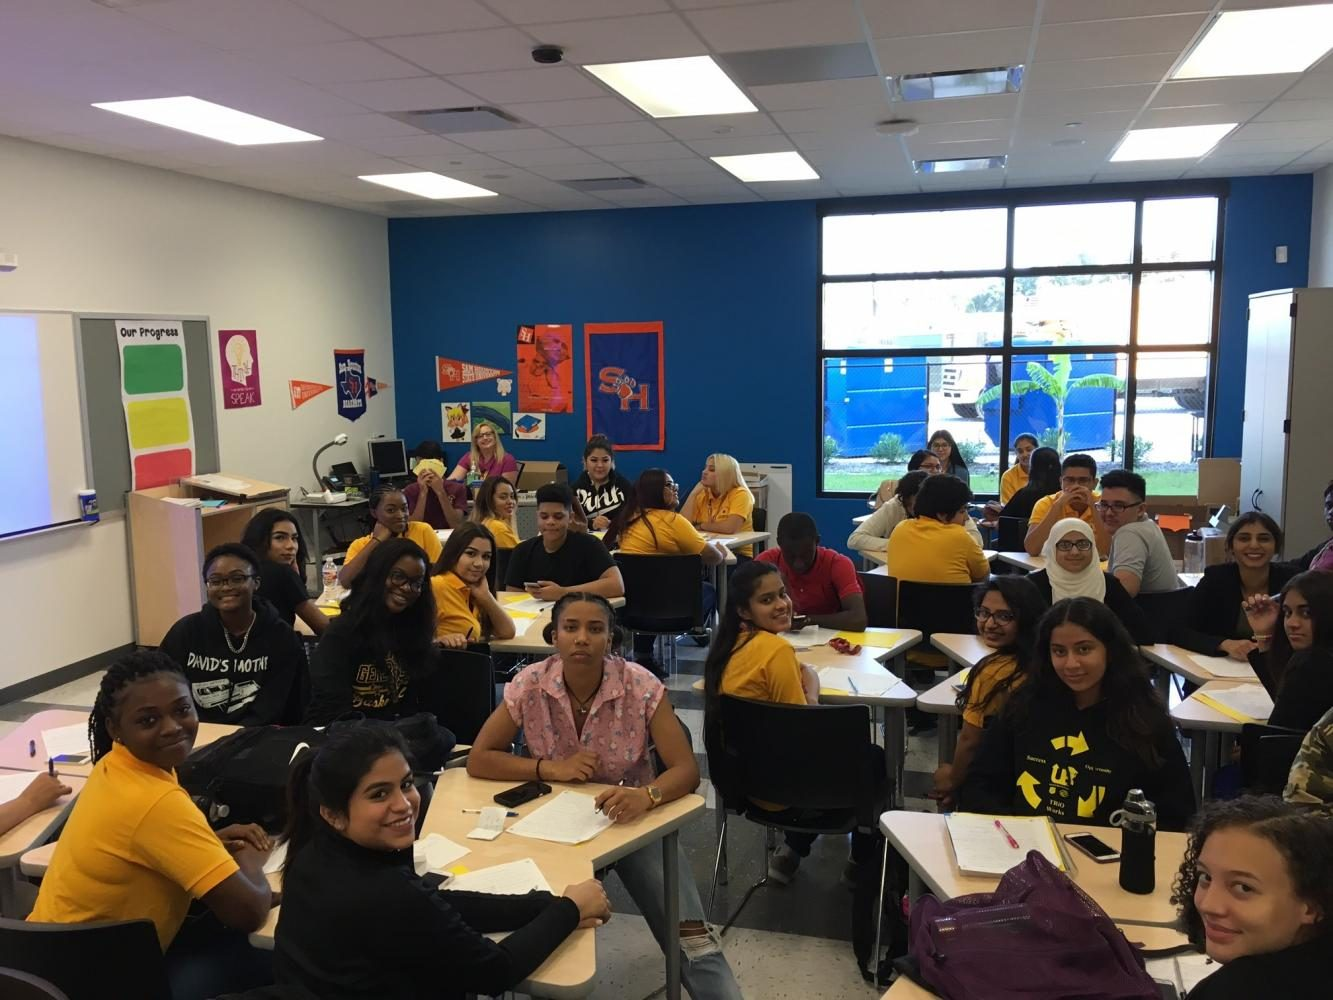 Seniors at Wisdom HS sit in their first period AP Government class on the very first day of school in the new building, Sept. 11, 2017.